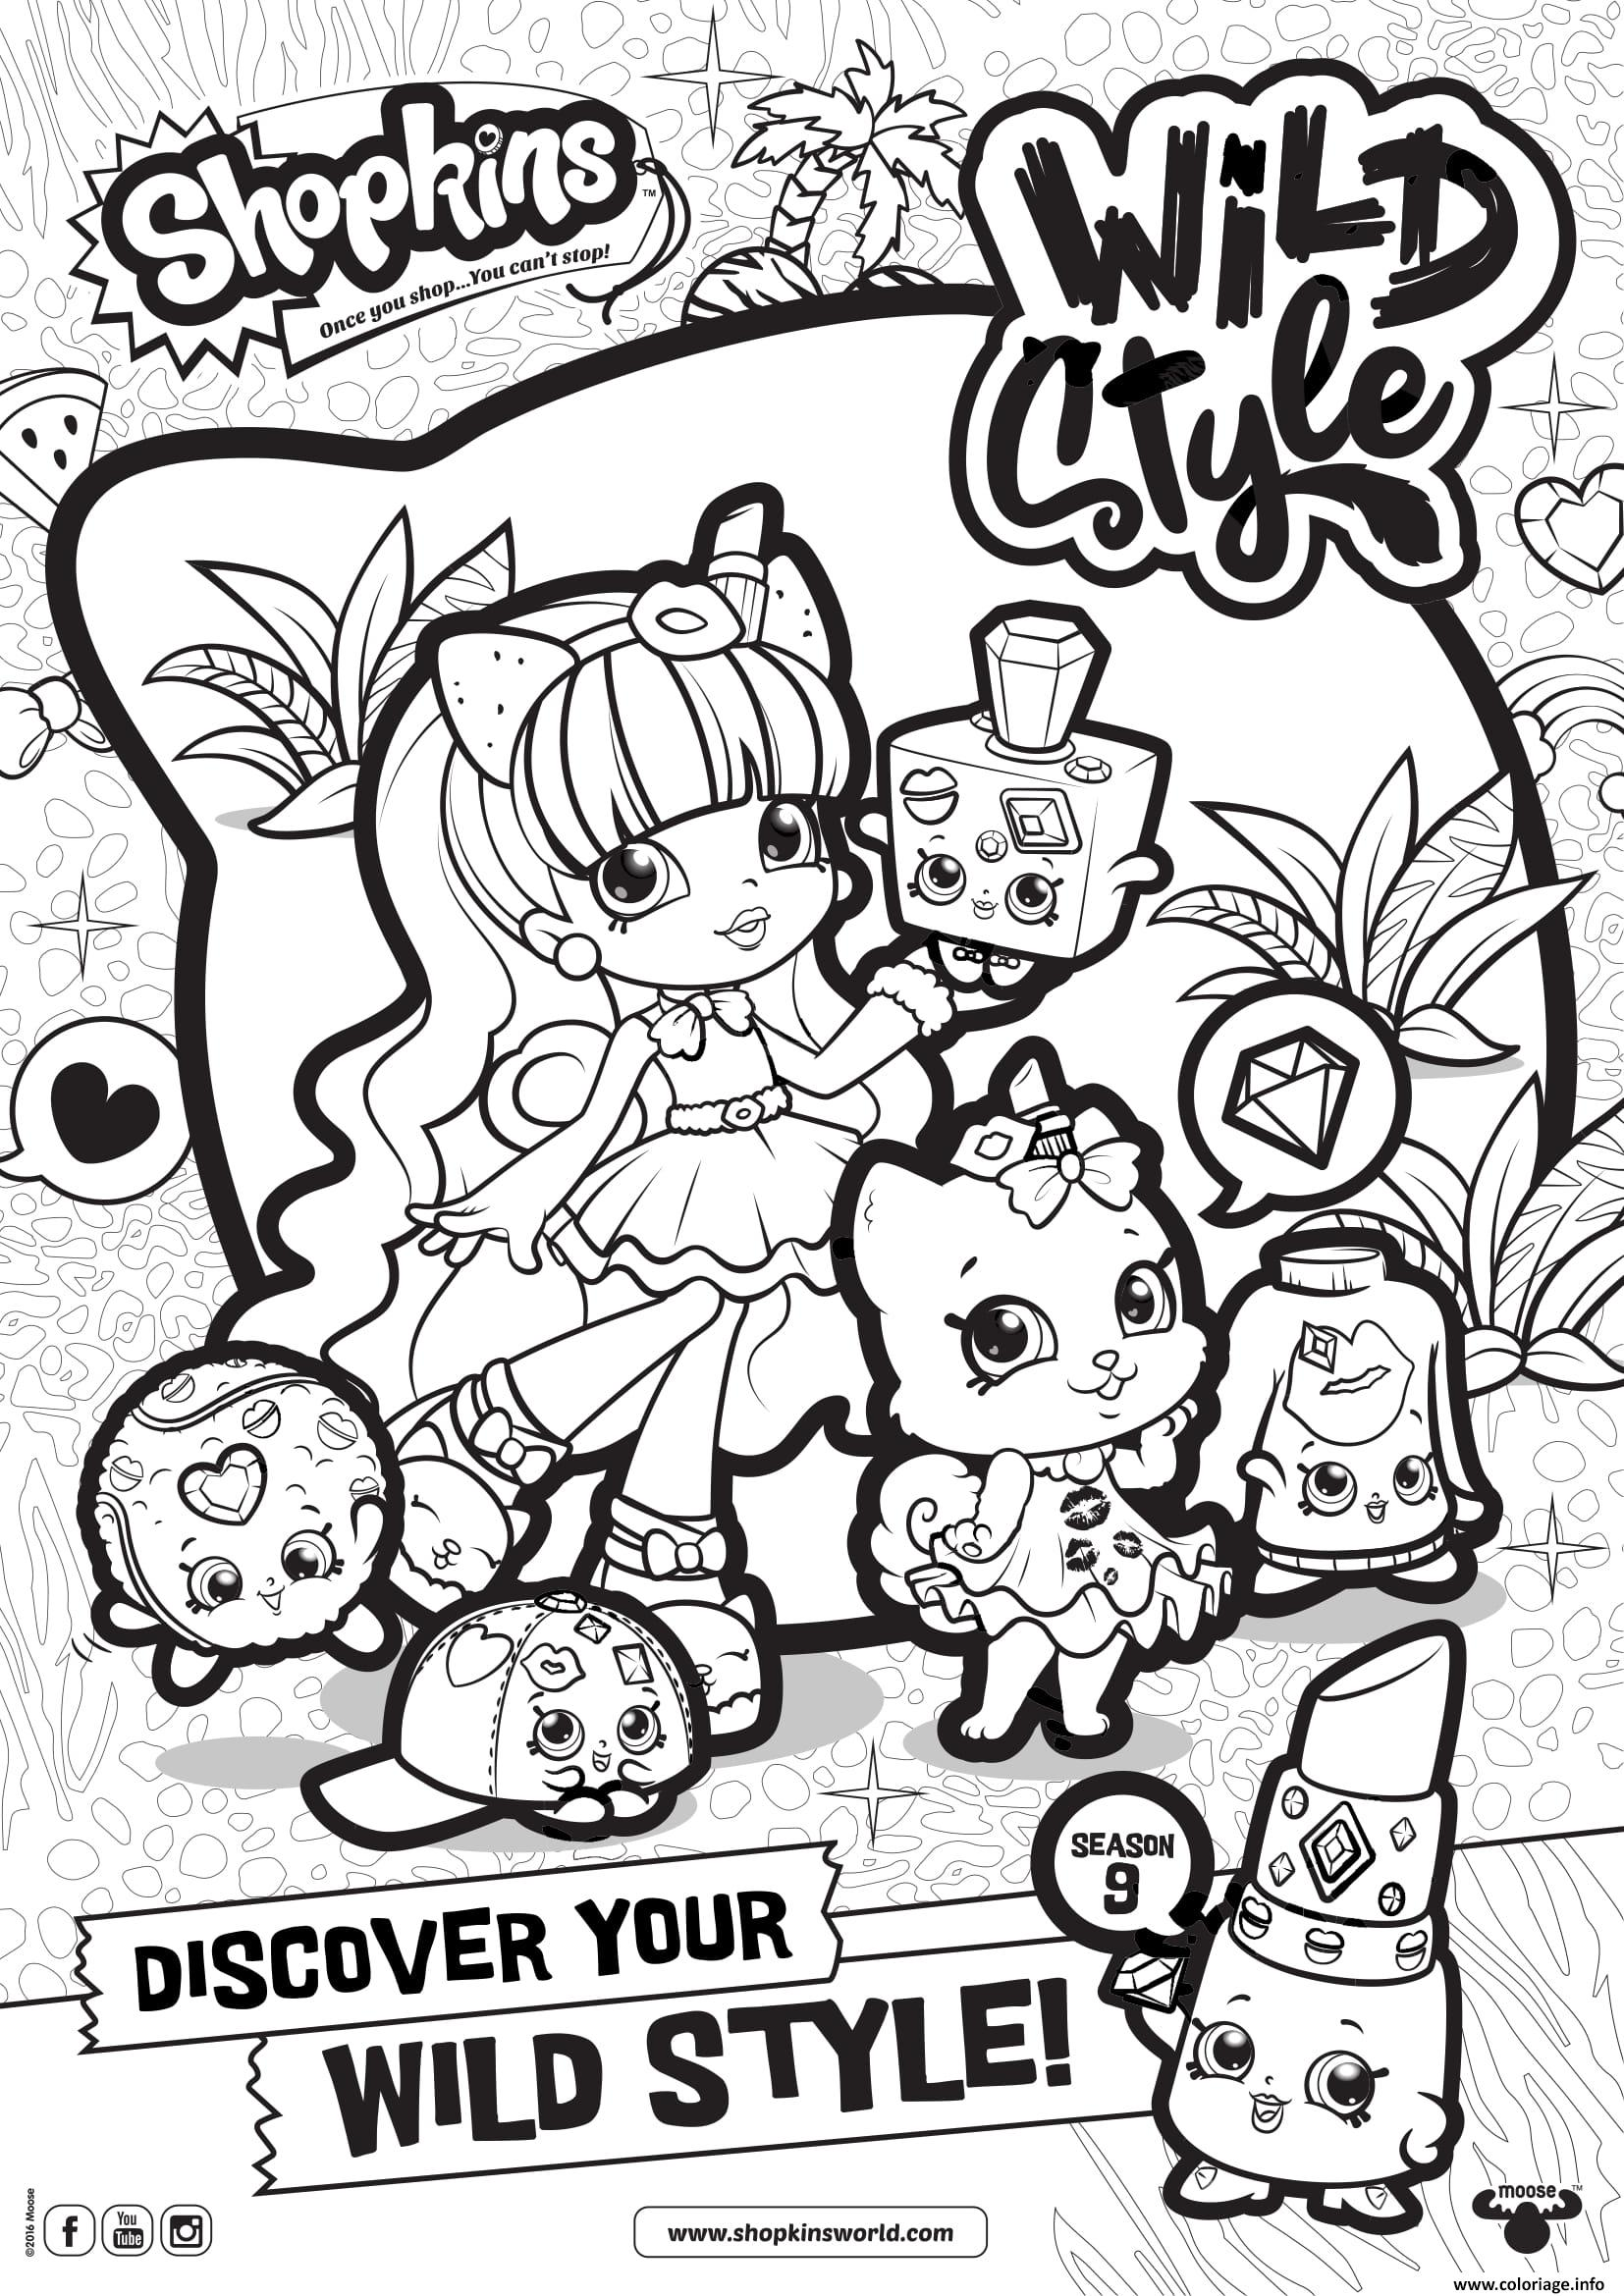 Coloriage Shopkins Saison 9 Wild